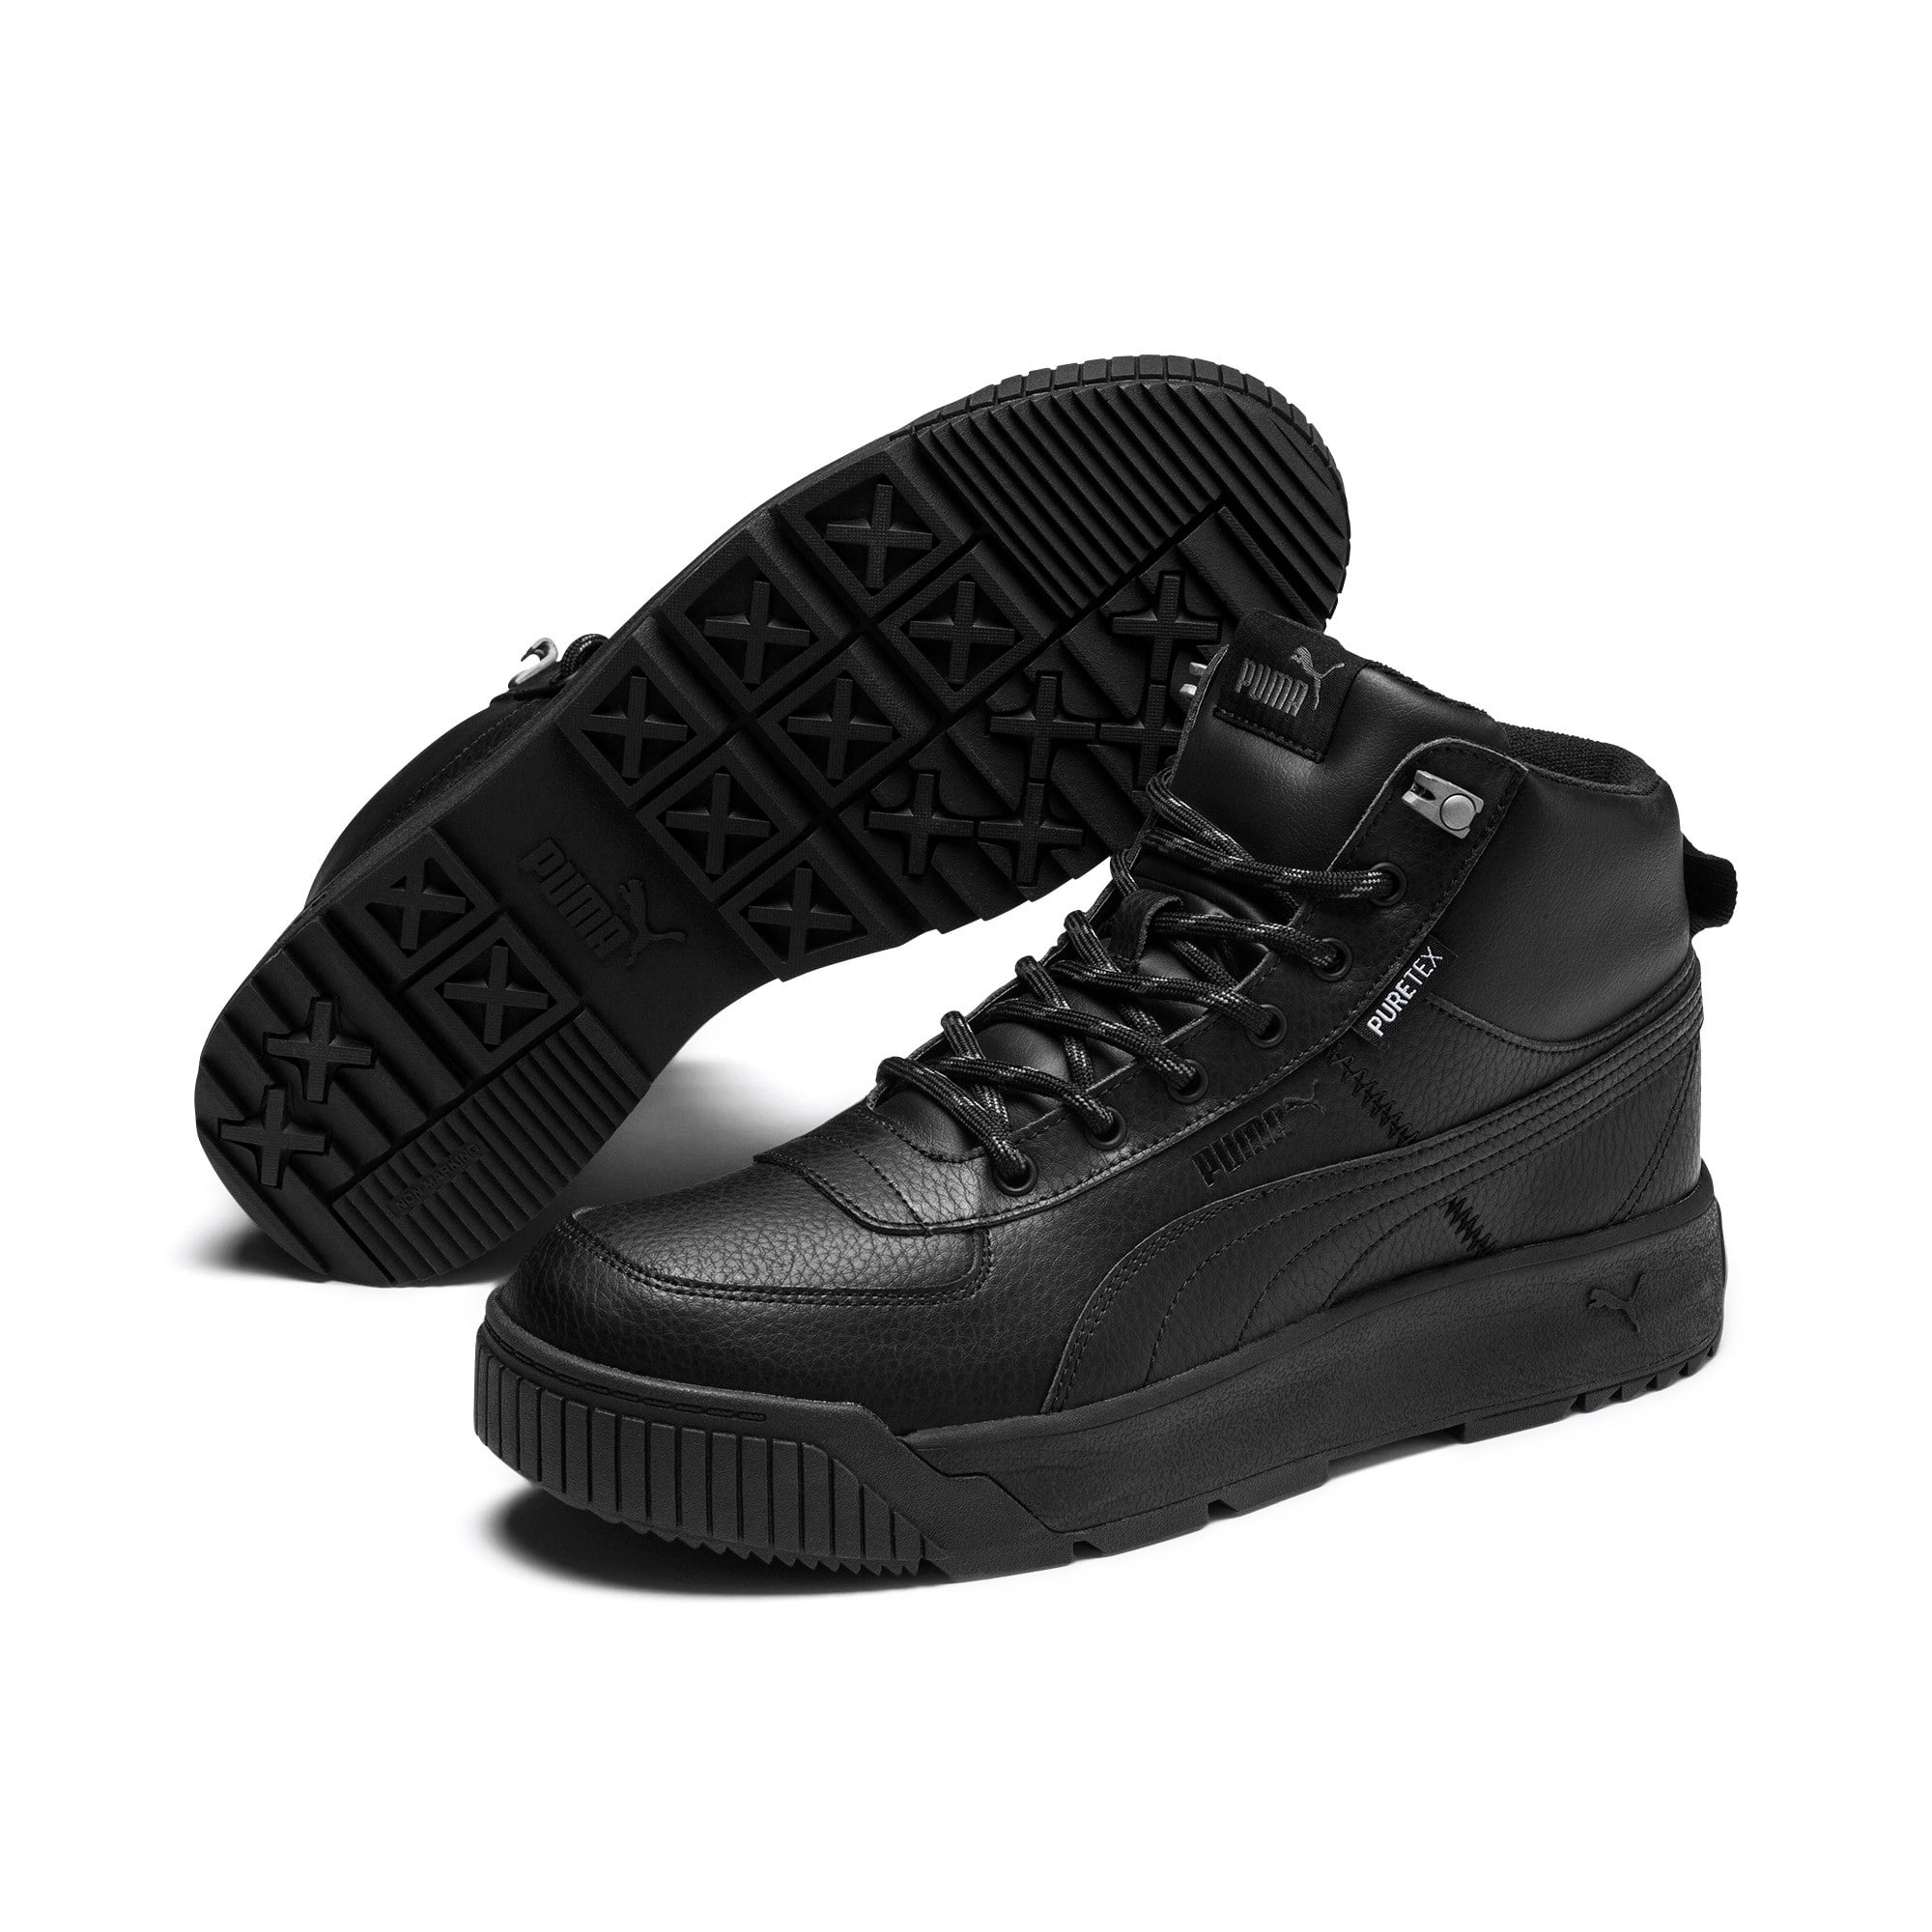 Thumbnail 3 of Tarrenz SB PURE-TEX Trainers, Puma Black-Puma Black, medium